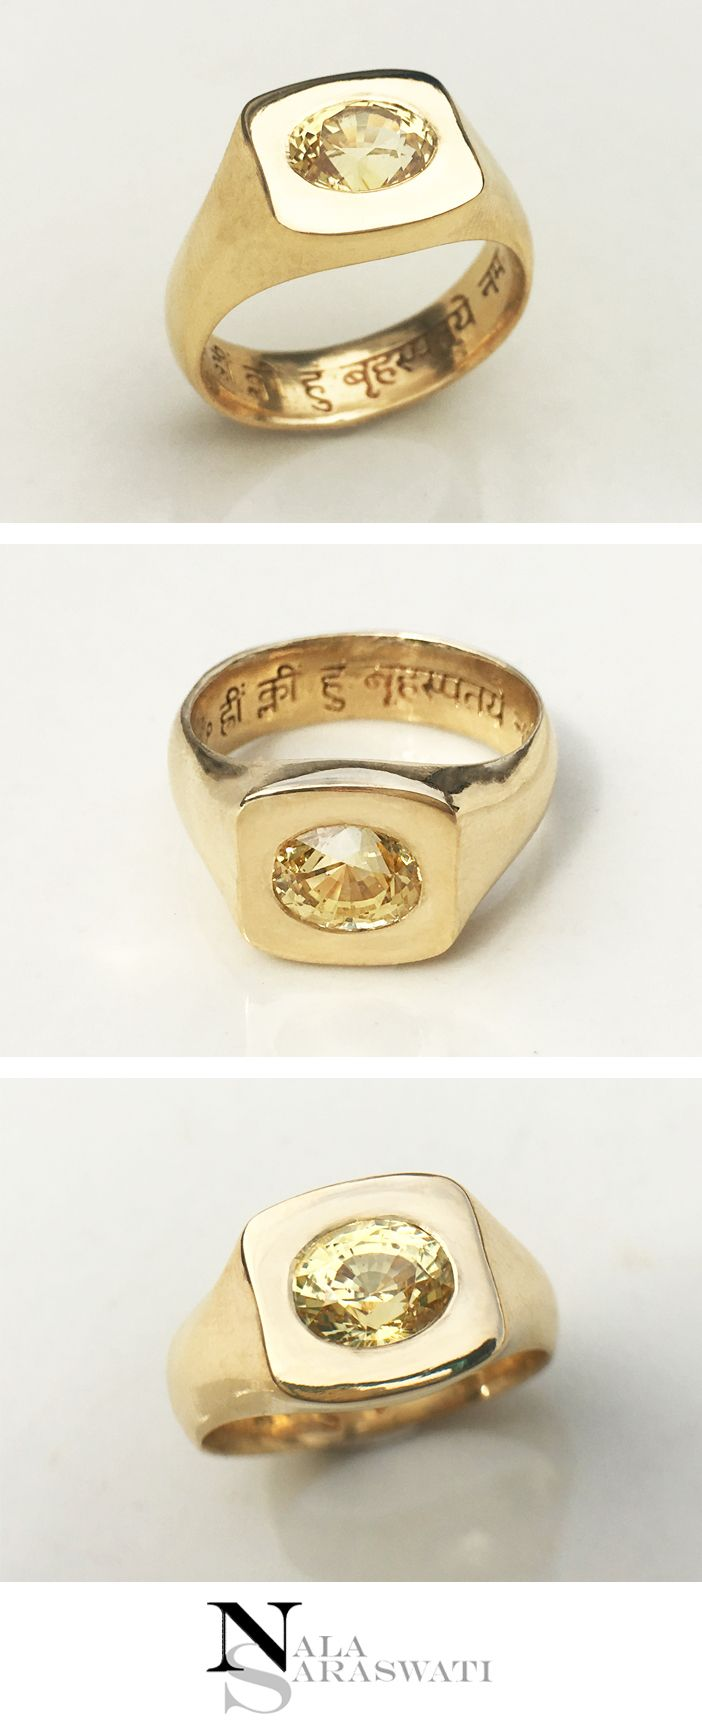 Signet style 18k gold ring with a yellow sapphire and very detailed sanskrit engraving the